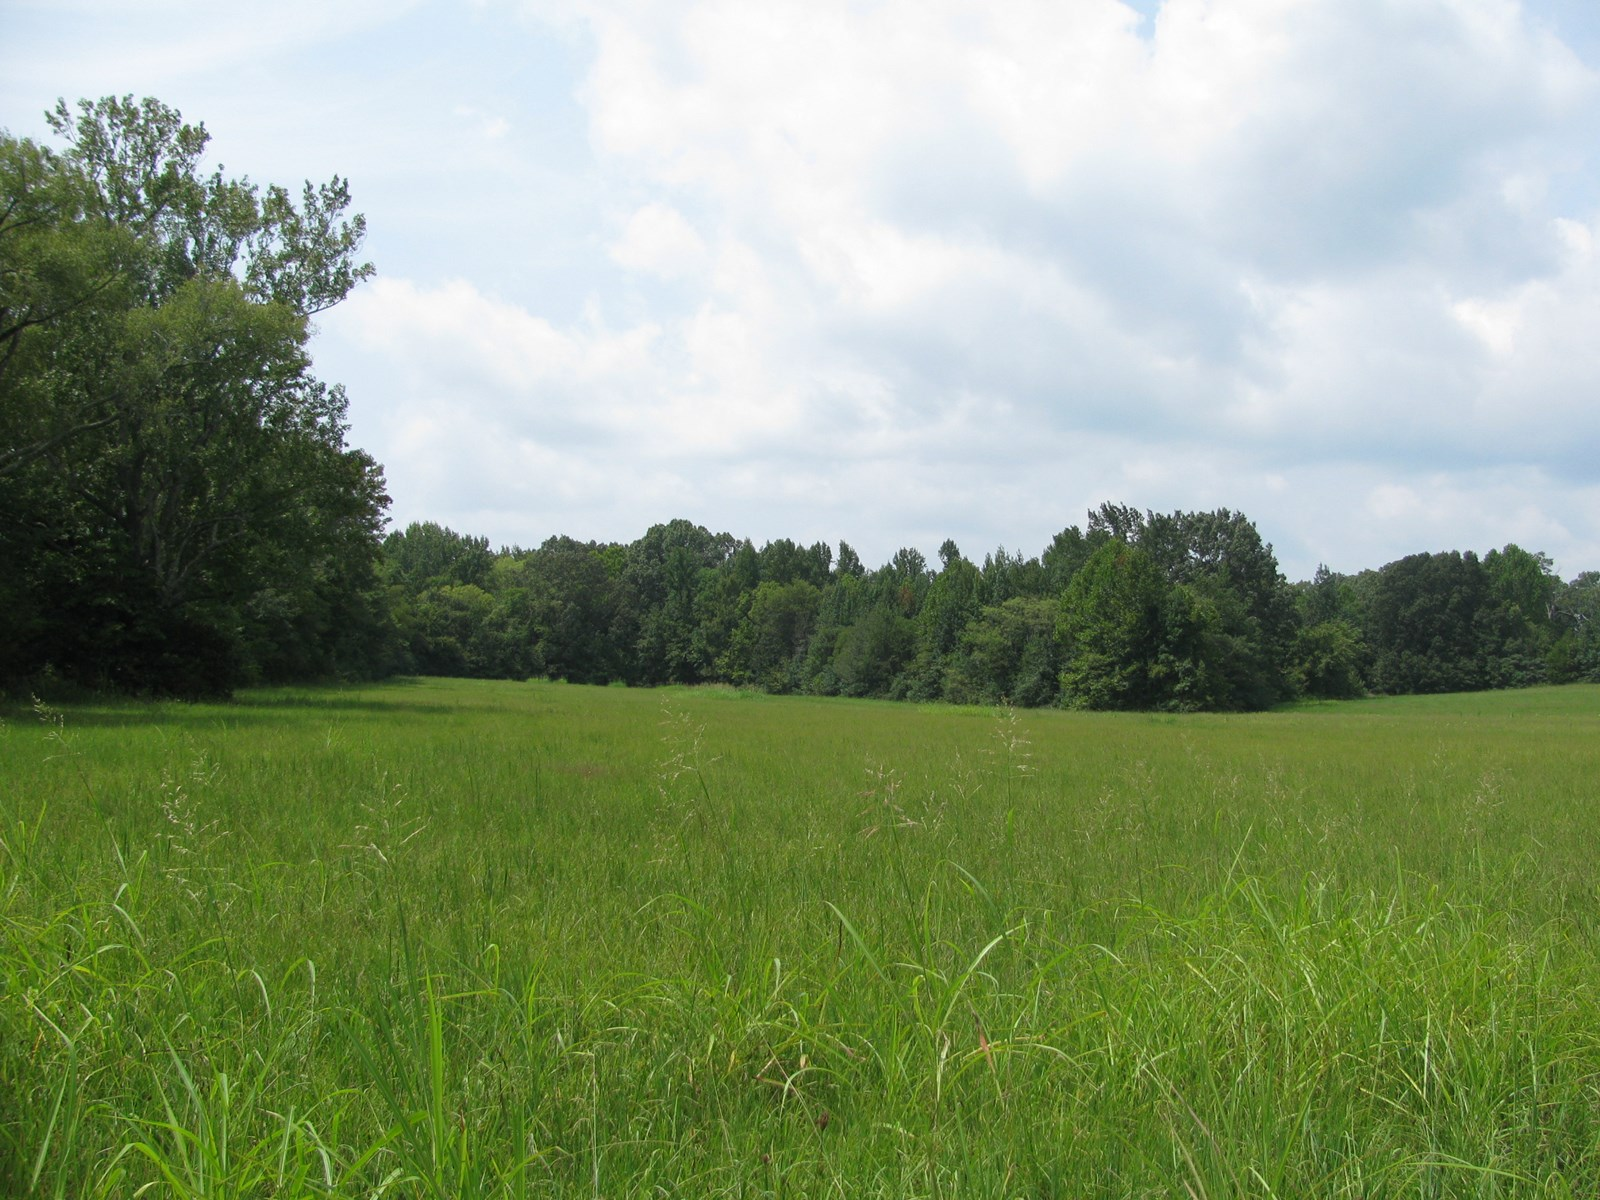 LAND FOR SALE ON HWY IN ADAMSVILLE, TN